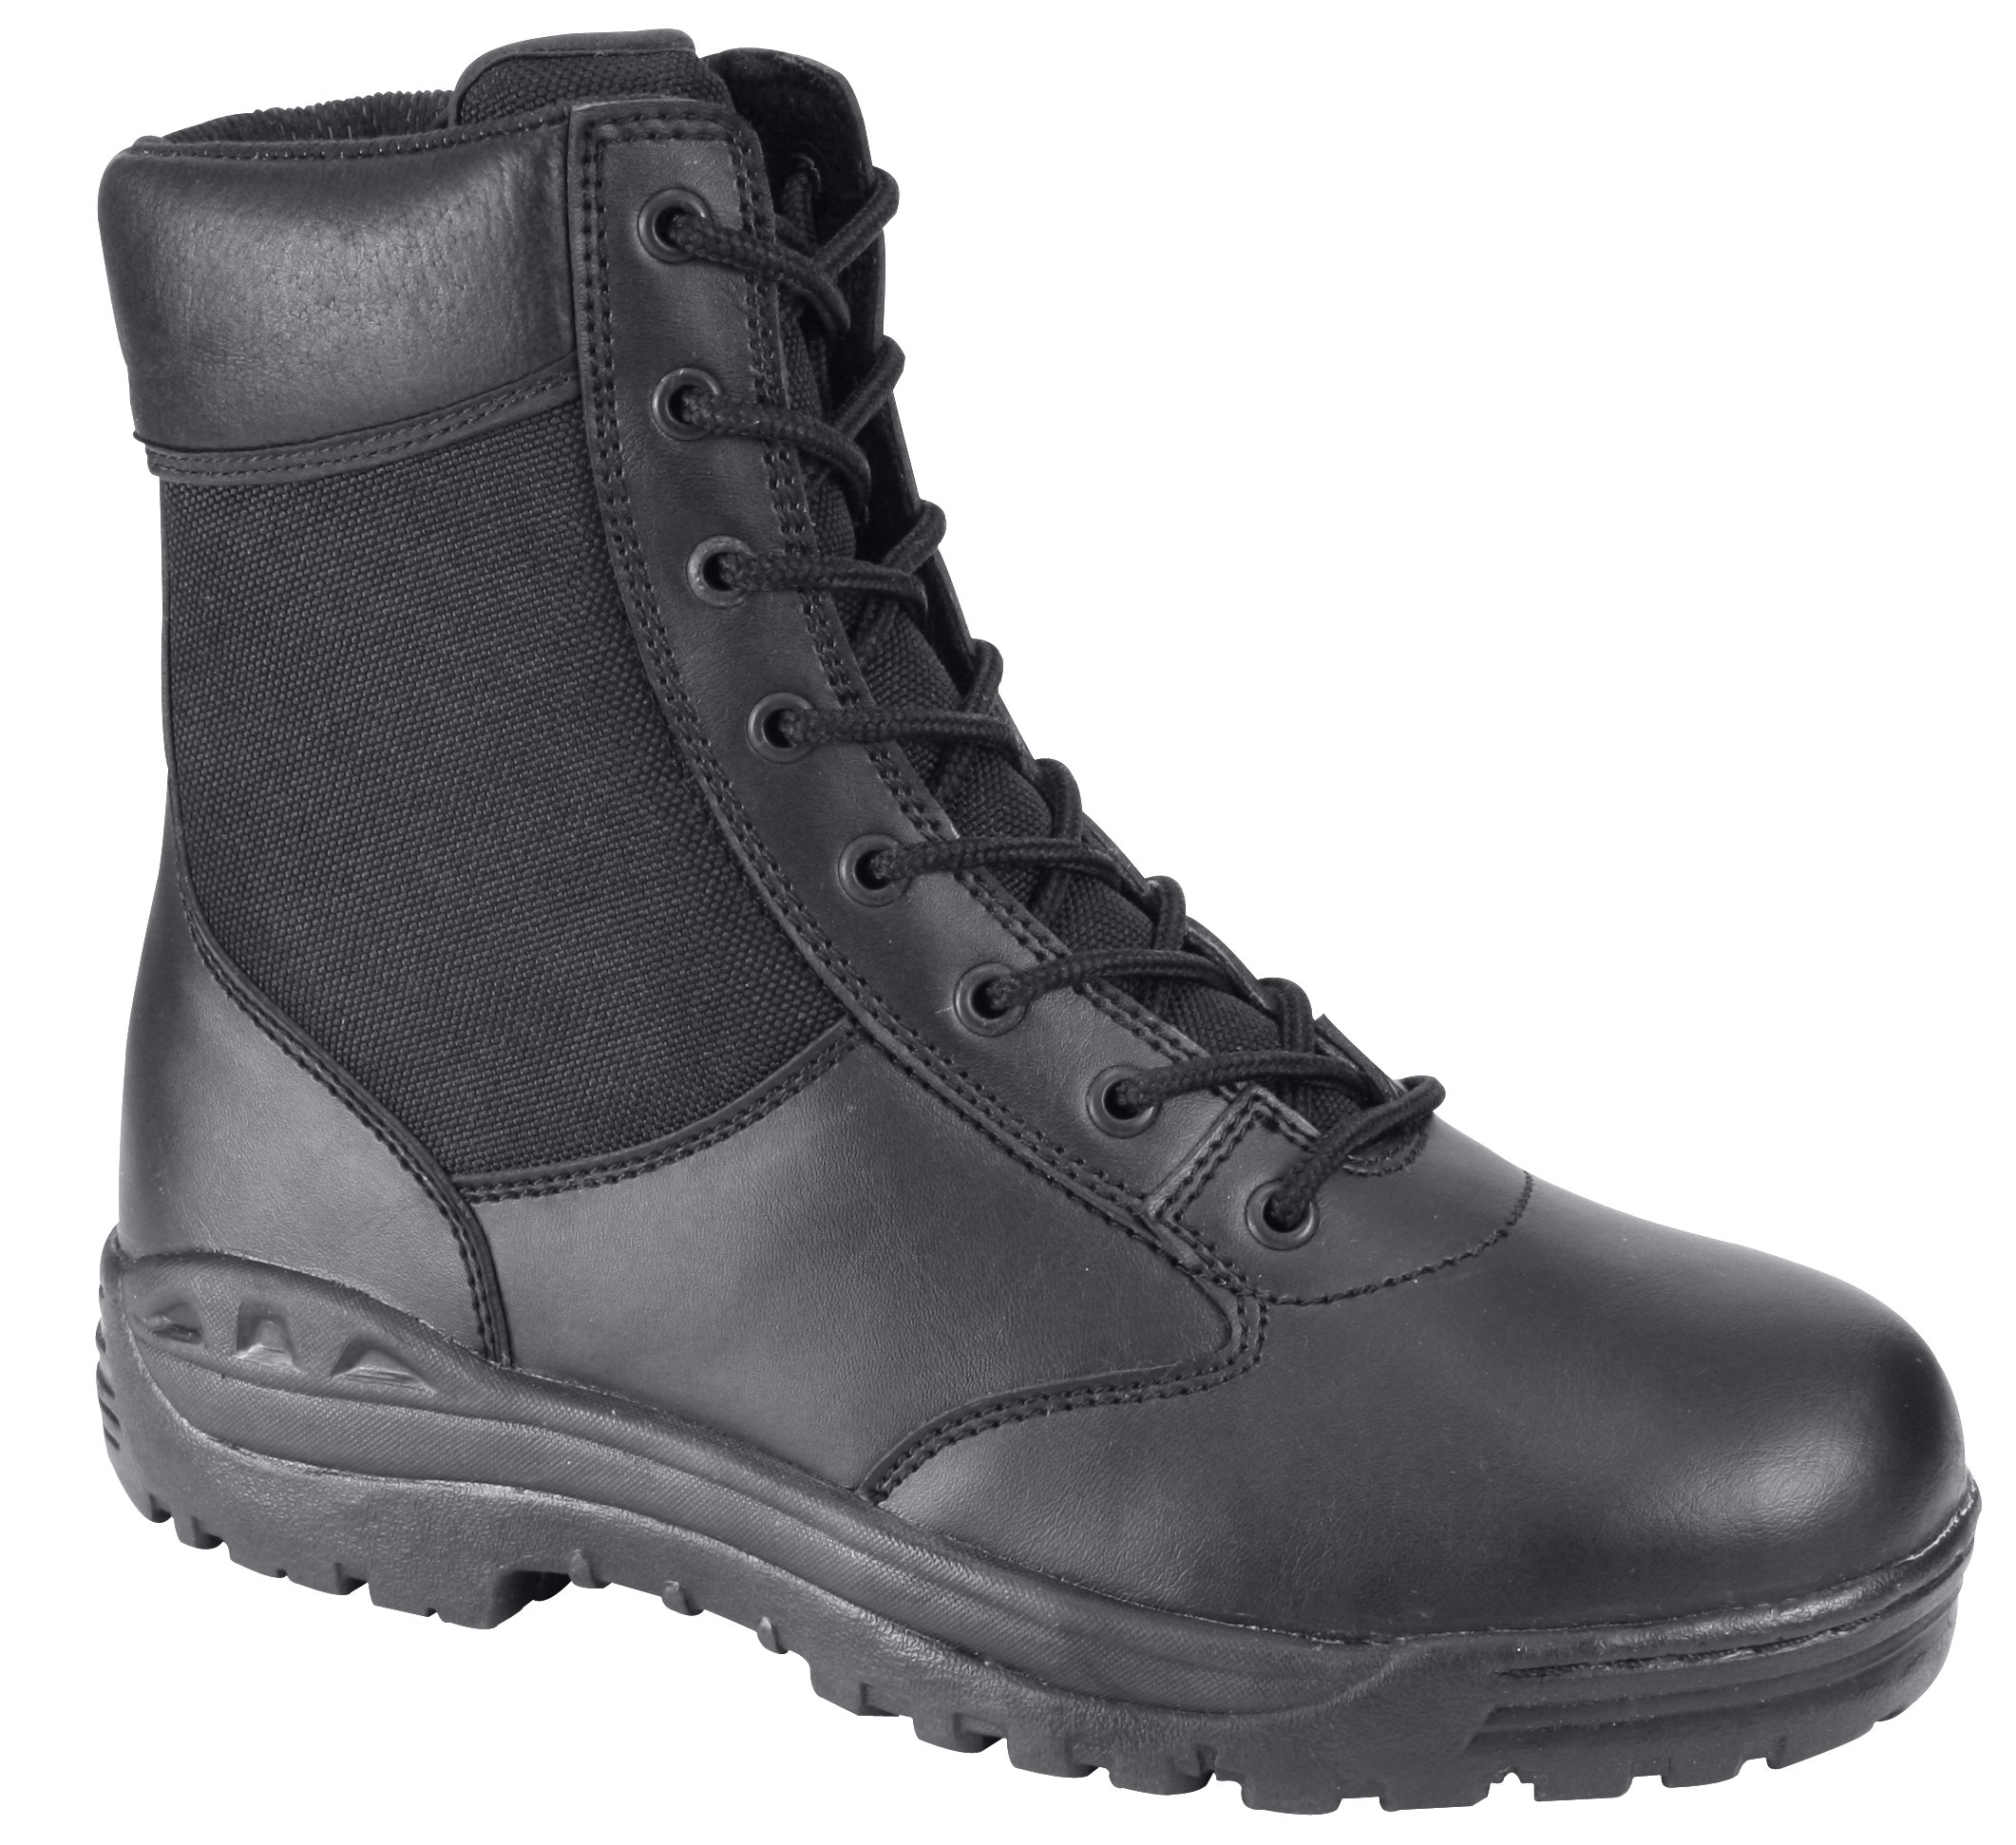 Rothco 8'' Forced Entry Security Boot, Black, 9.5